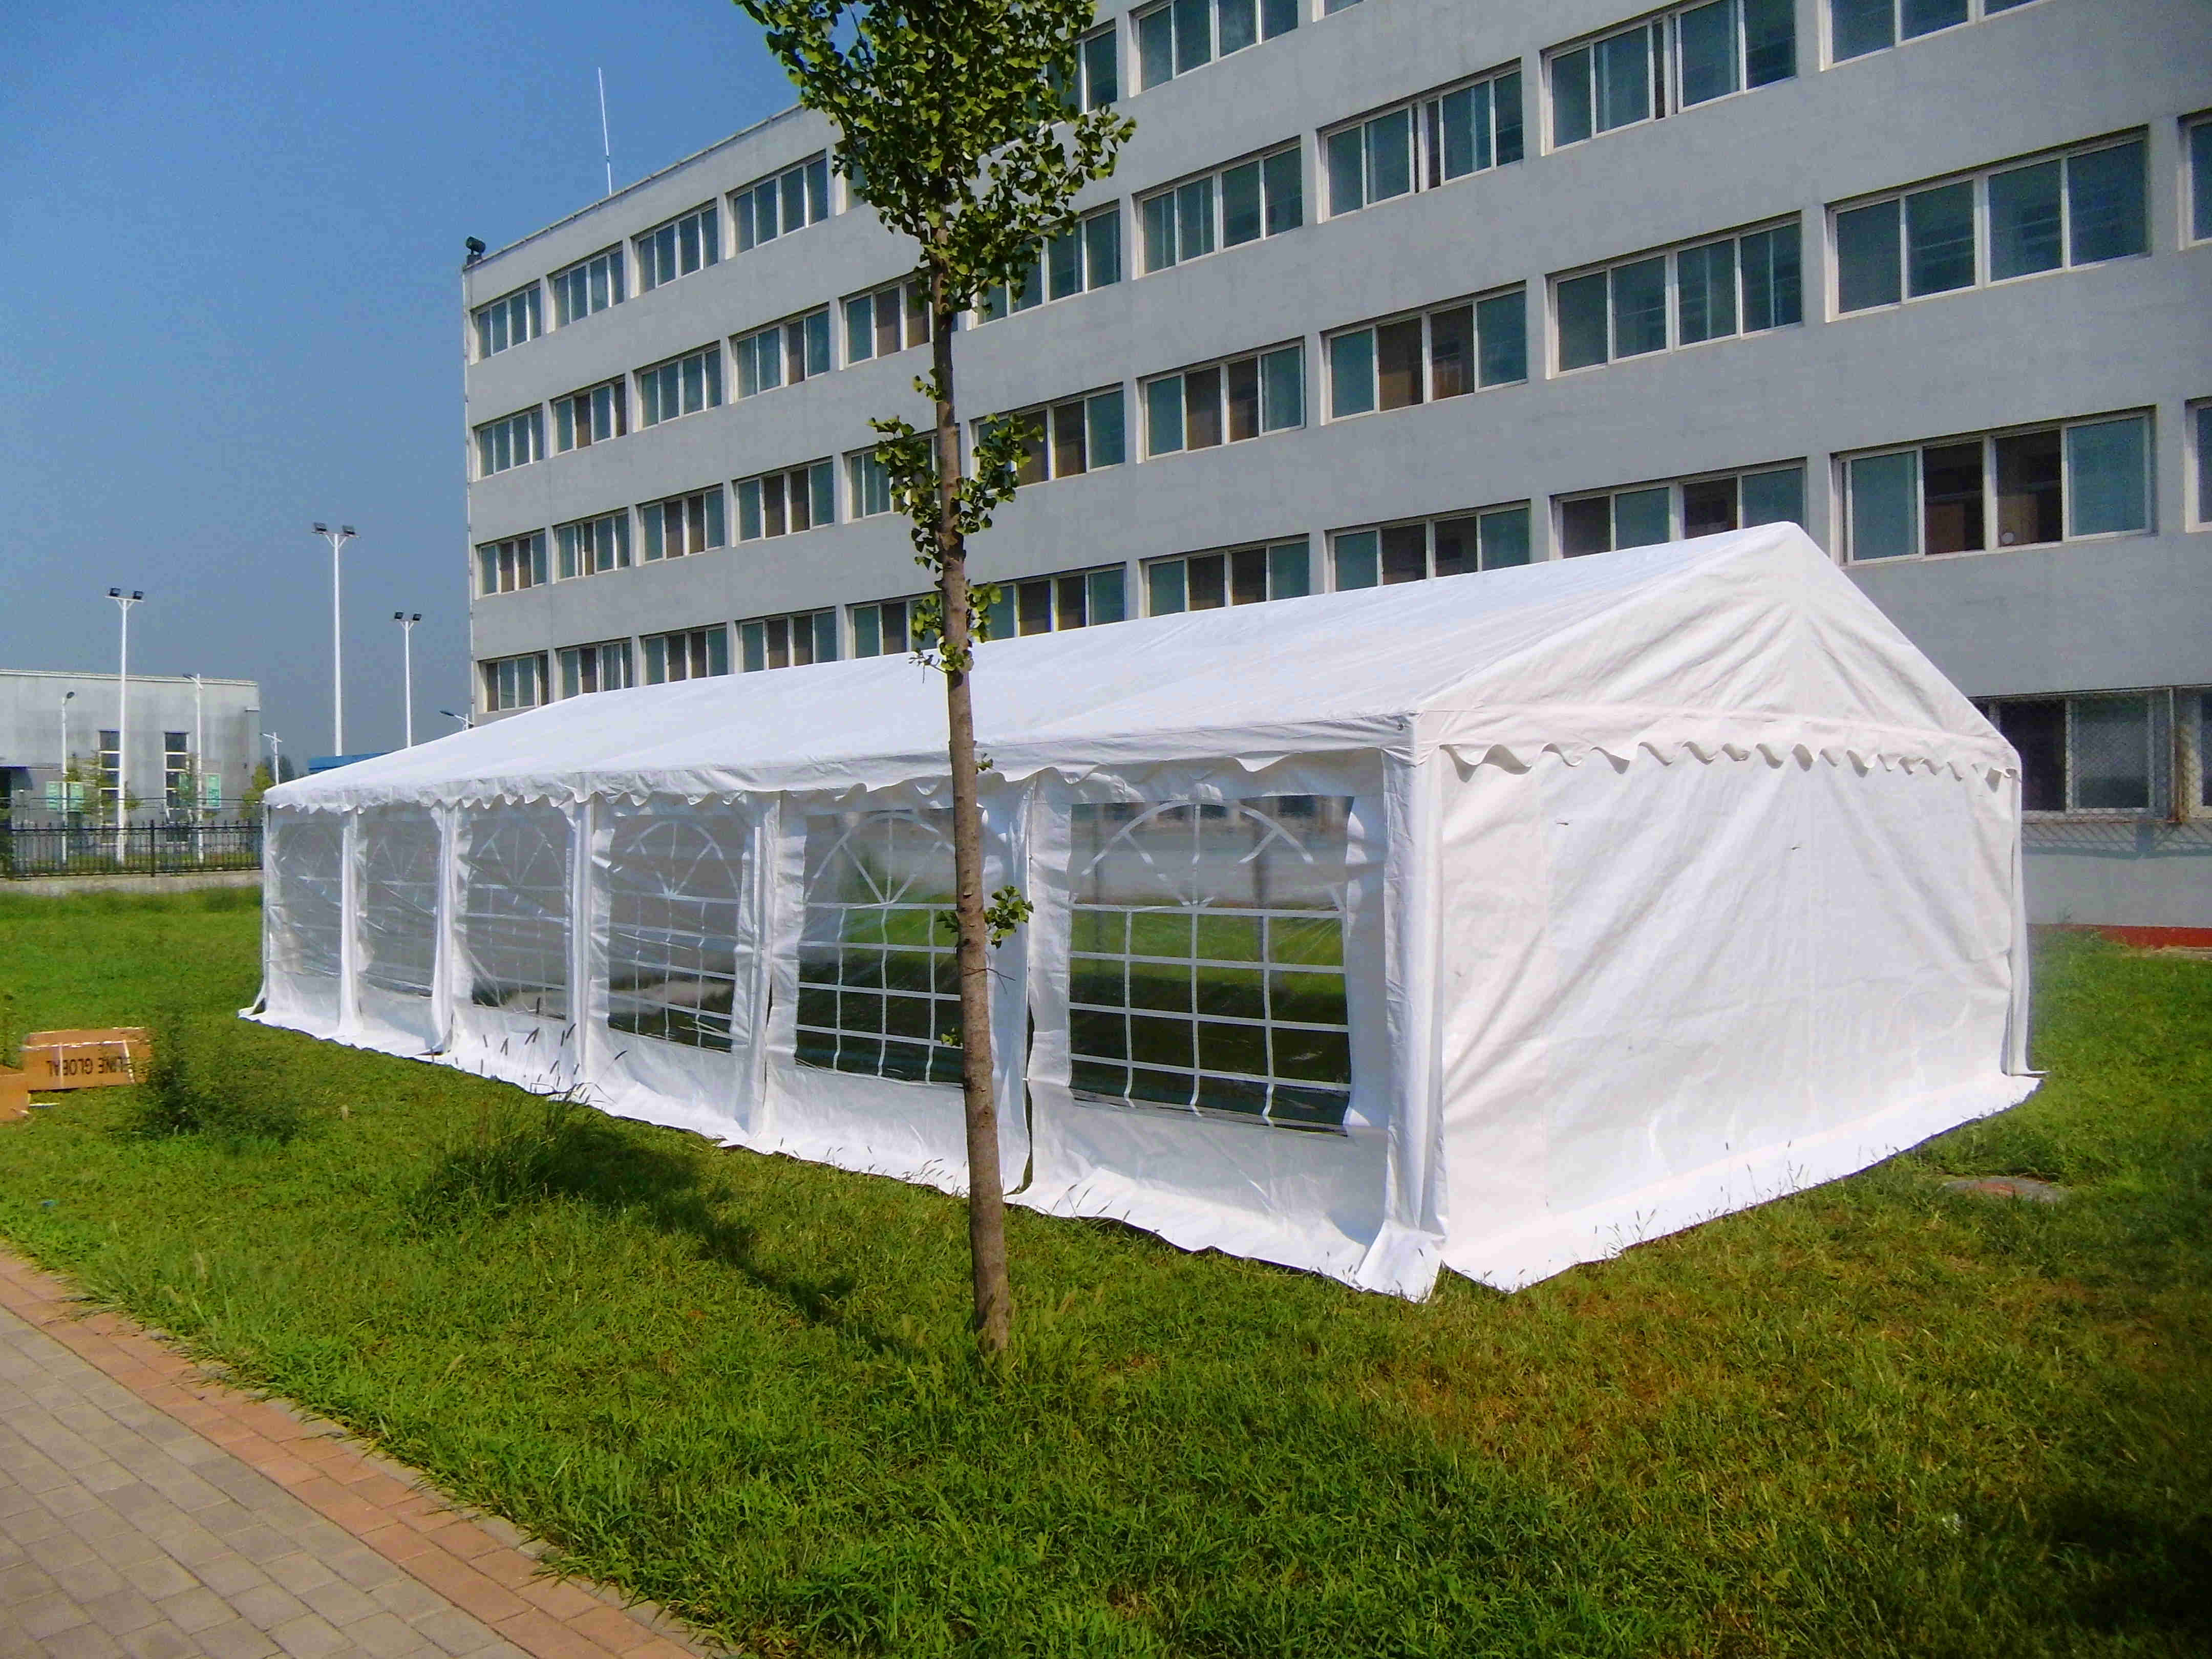 40 x 20 Ft Heavy Duty Commercial Party Canopy Car Shelter Wedding C&ing Tent - Walmart.com & 40 x 20 Ft Heavy Duty Commercial Party Canopy Car Shelter Wedding ...